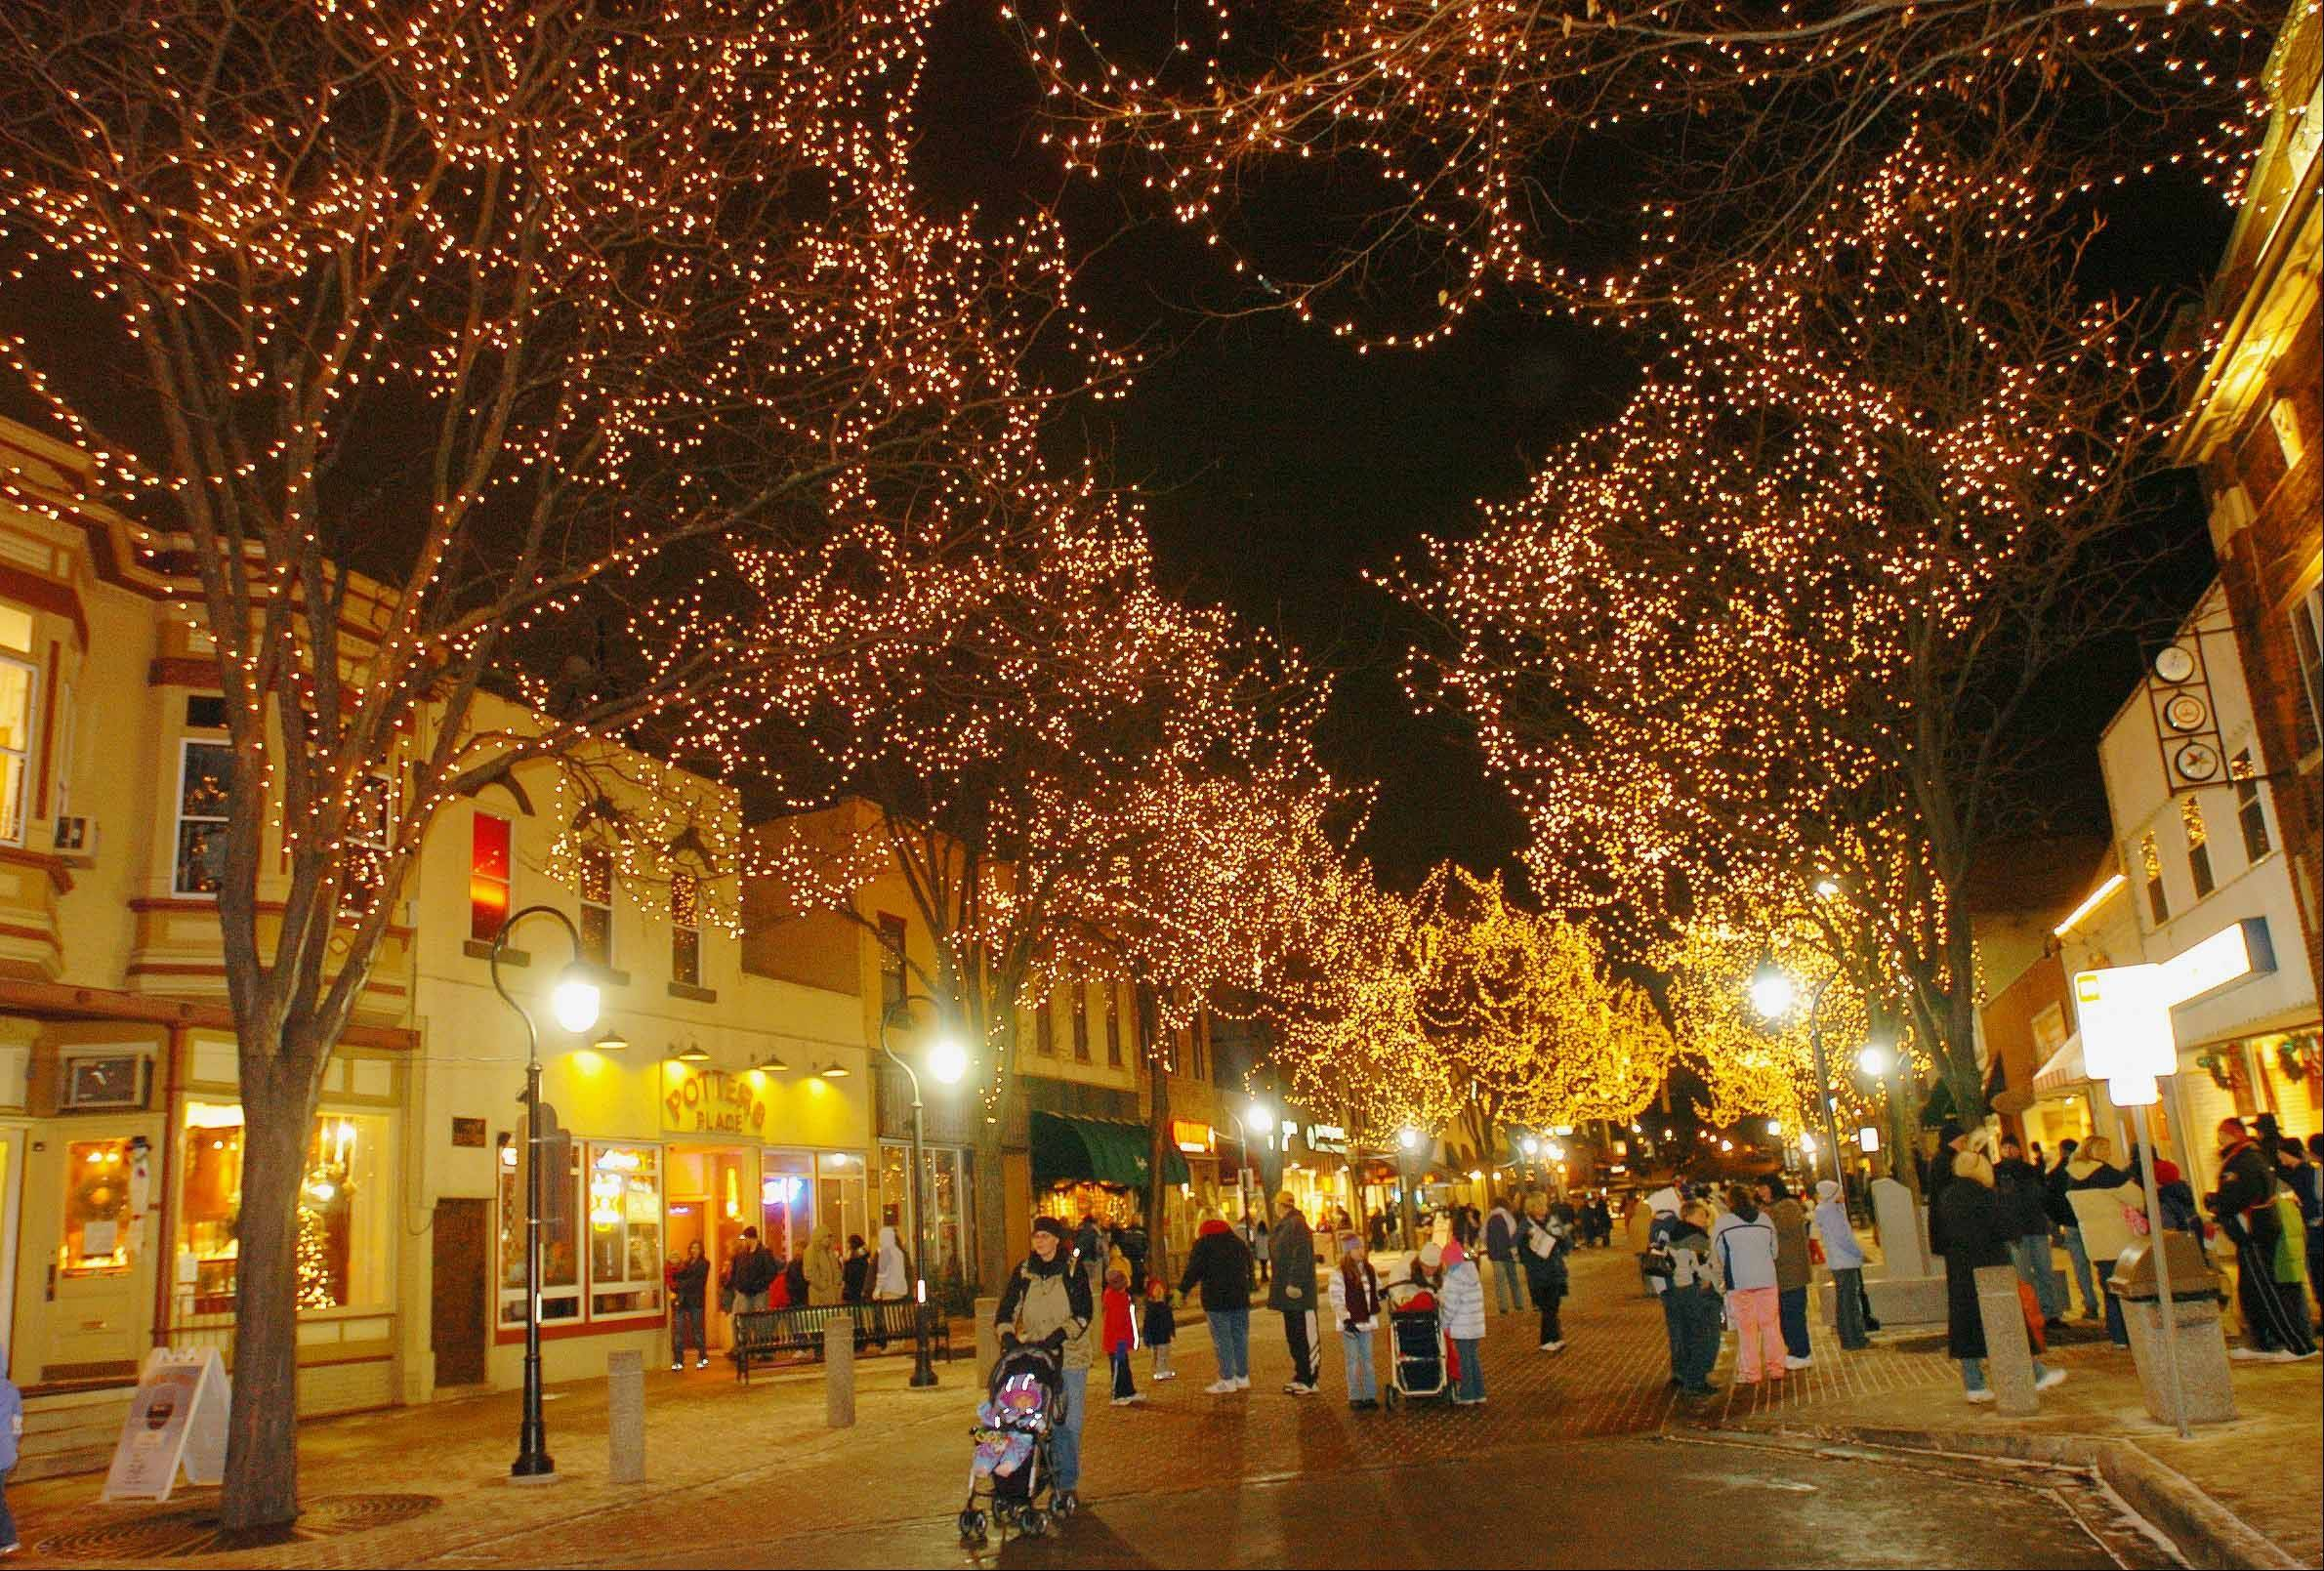 The Holiday Grand Illumination will dazzle with more than 300,000 holiday lights during a Hometown Holidays kickoff event at 6 p.m. Friday, Nov. 8, in downtown Naperville. Usually held around Thanksgiving, the ceremony was moved up about three weeks to precede Sunday's inaugural Edward Hospital Naperville Marathon.